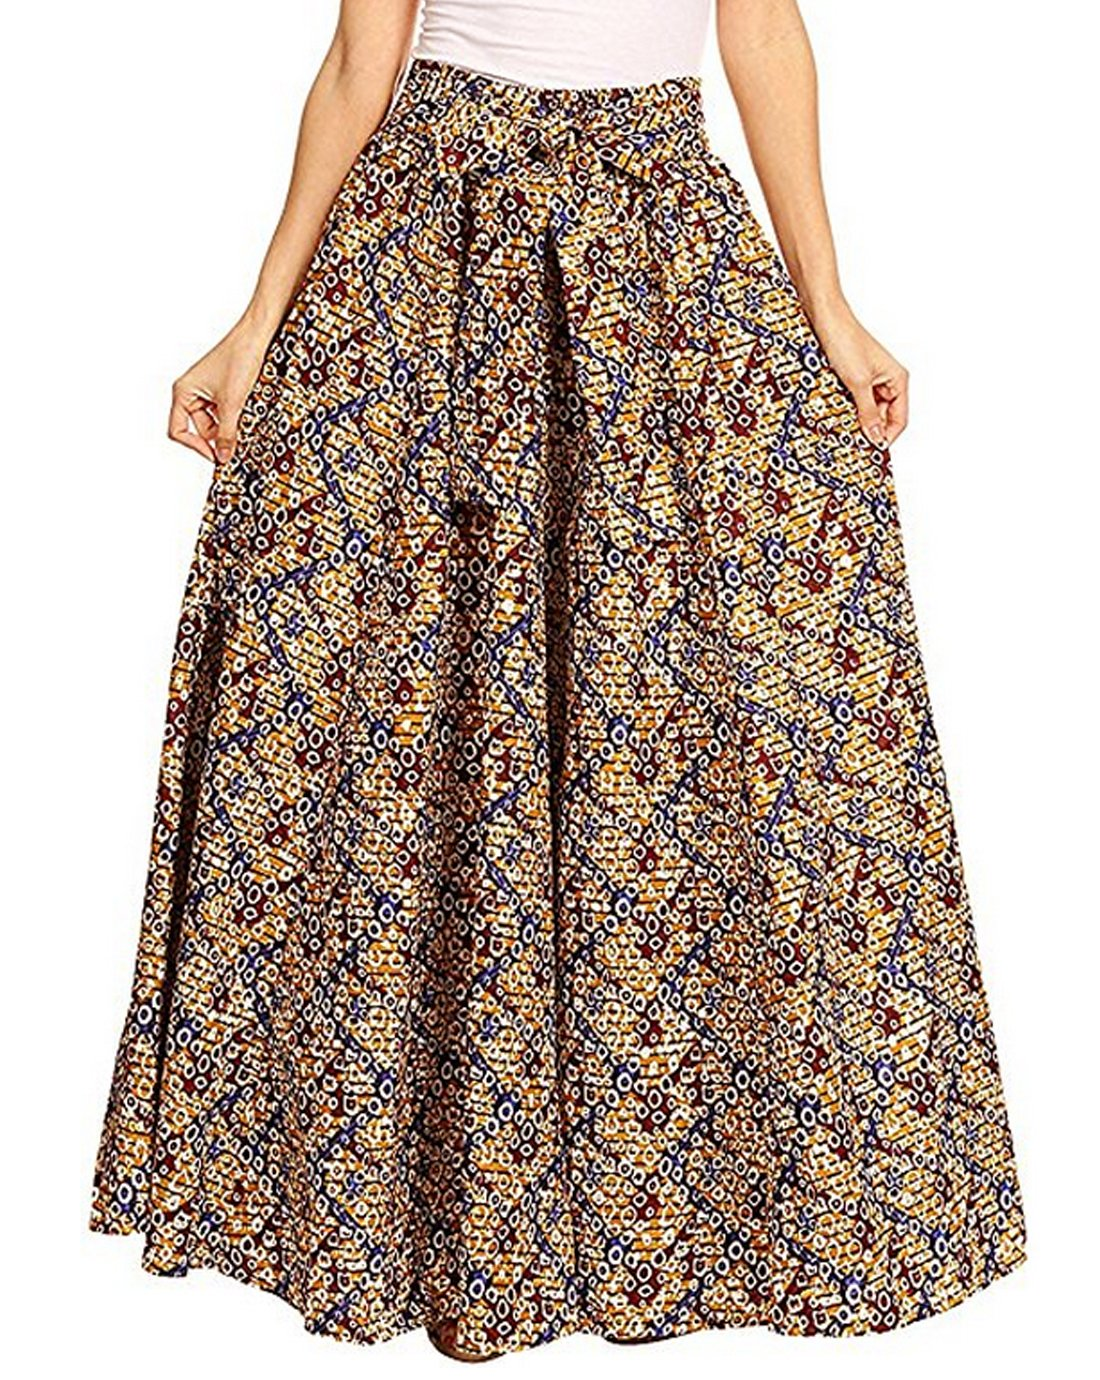 Monique Women Summer Floral Print Pleated Maxi Skirt Adjustable Waist A Line Long Skirt Dress